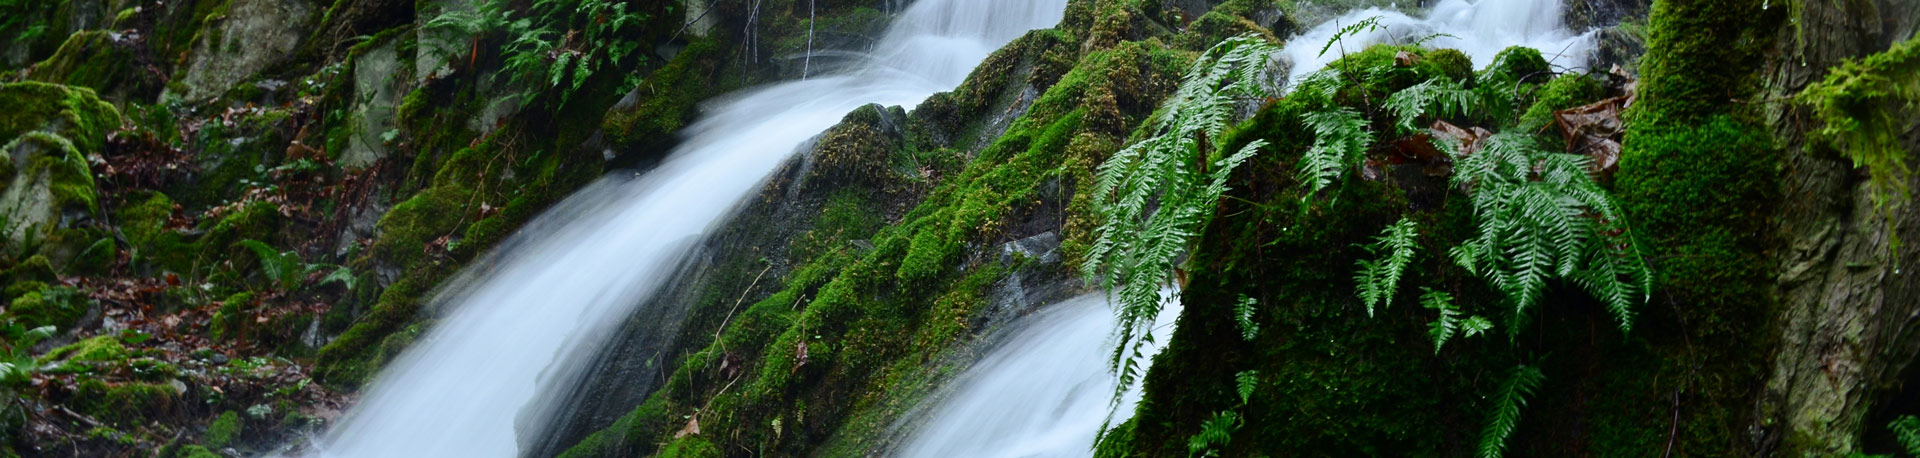 Waterfall down a mossy green cliff with ferns